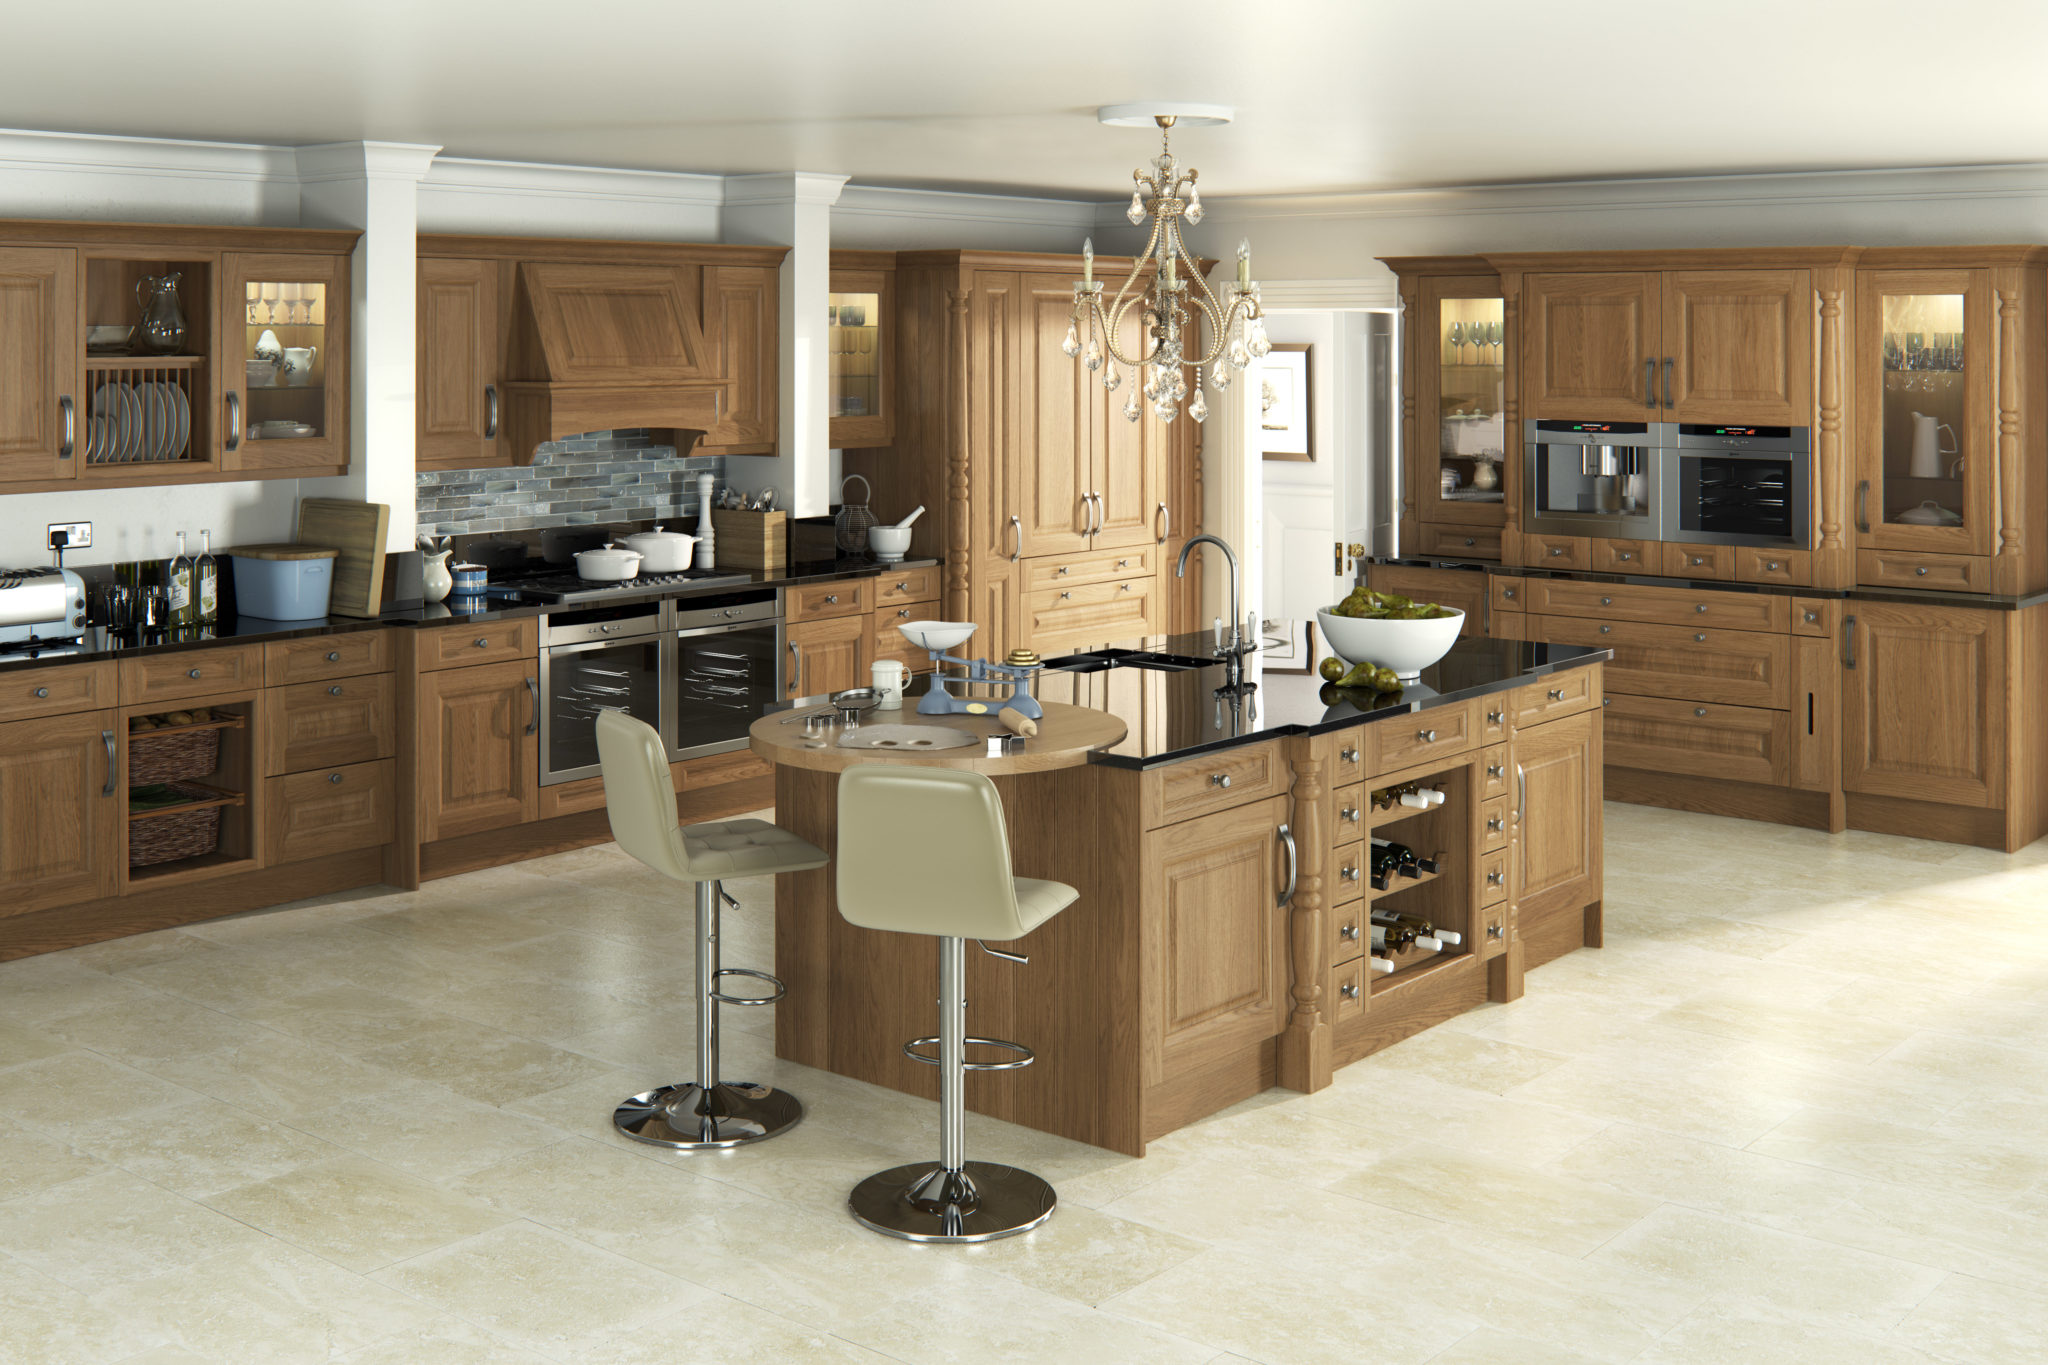 Traditional kitchen design oak kitchens traditional for What is traditional kitchen